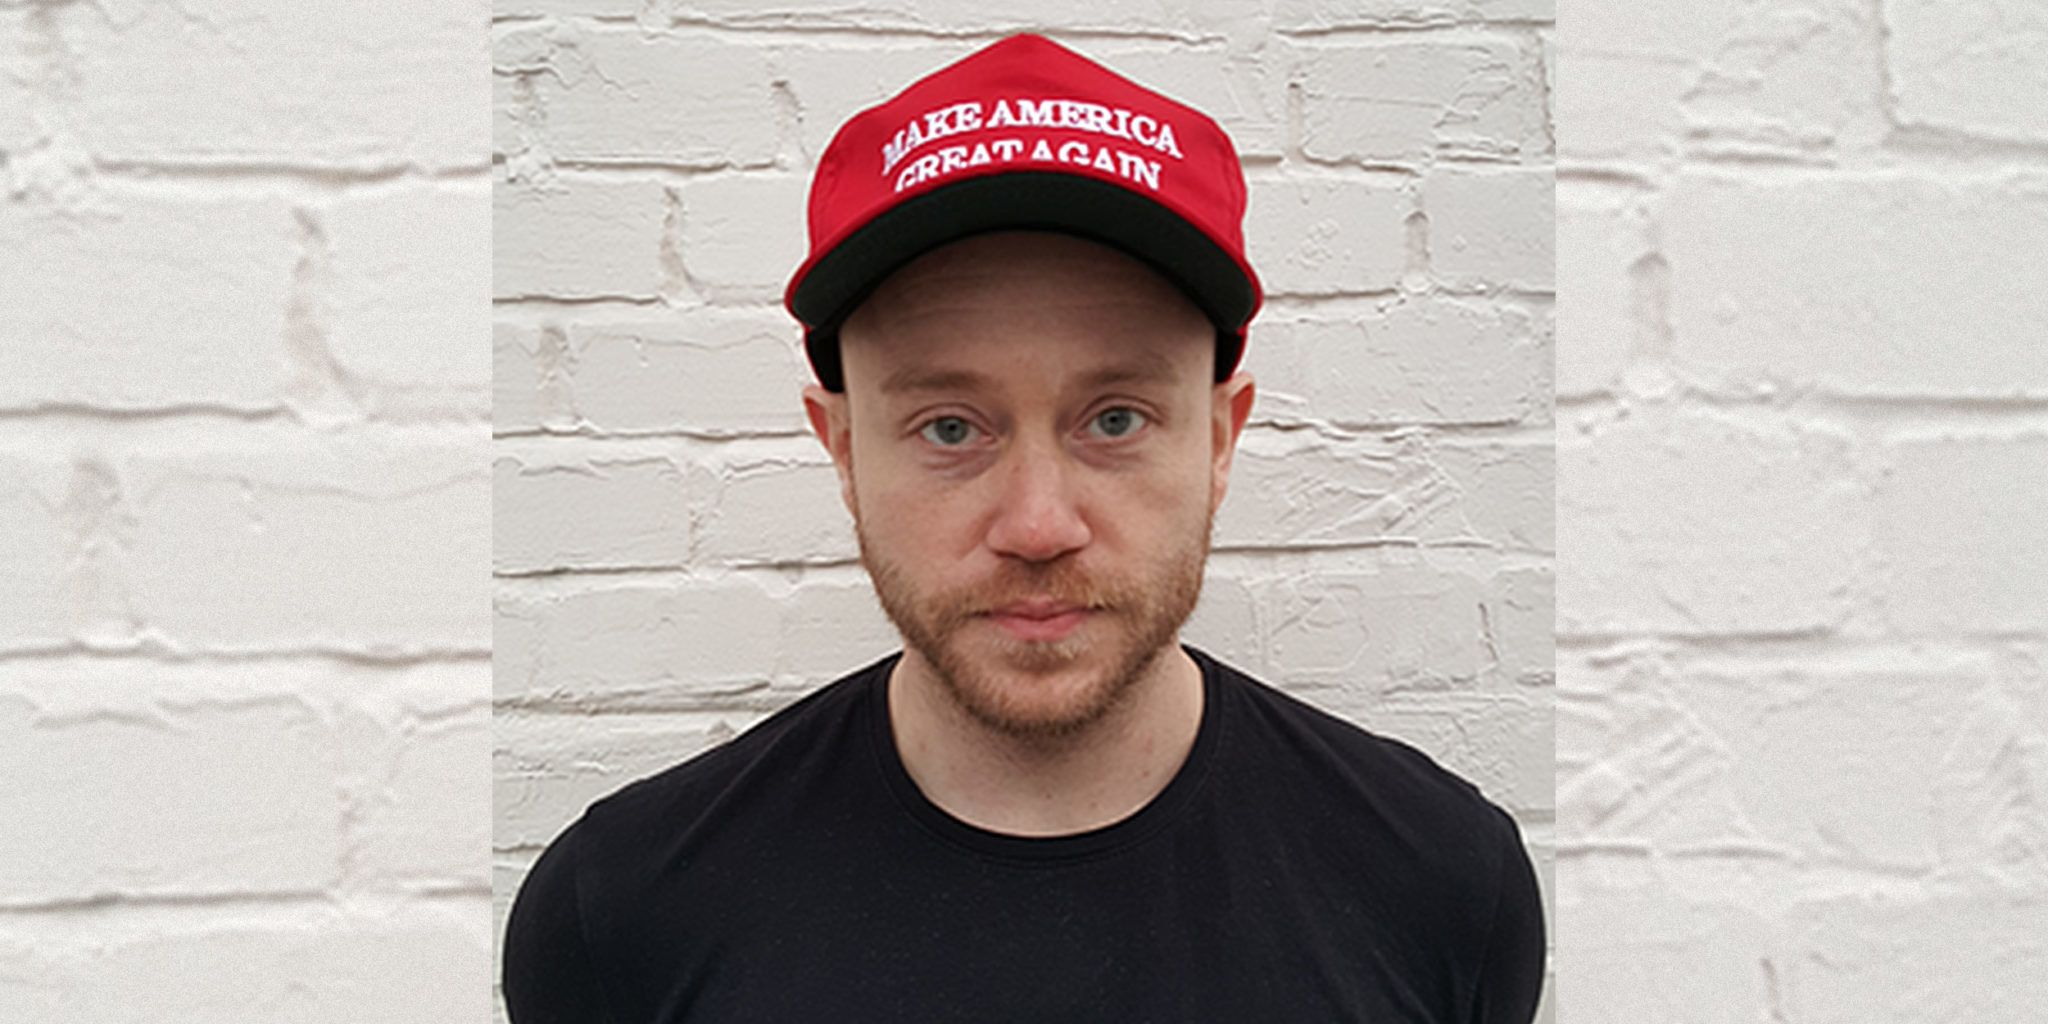 Andrew Anglin, neo-Nazi troll and